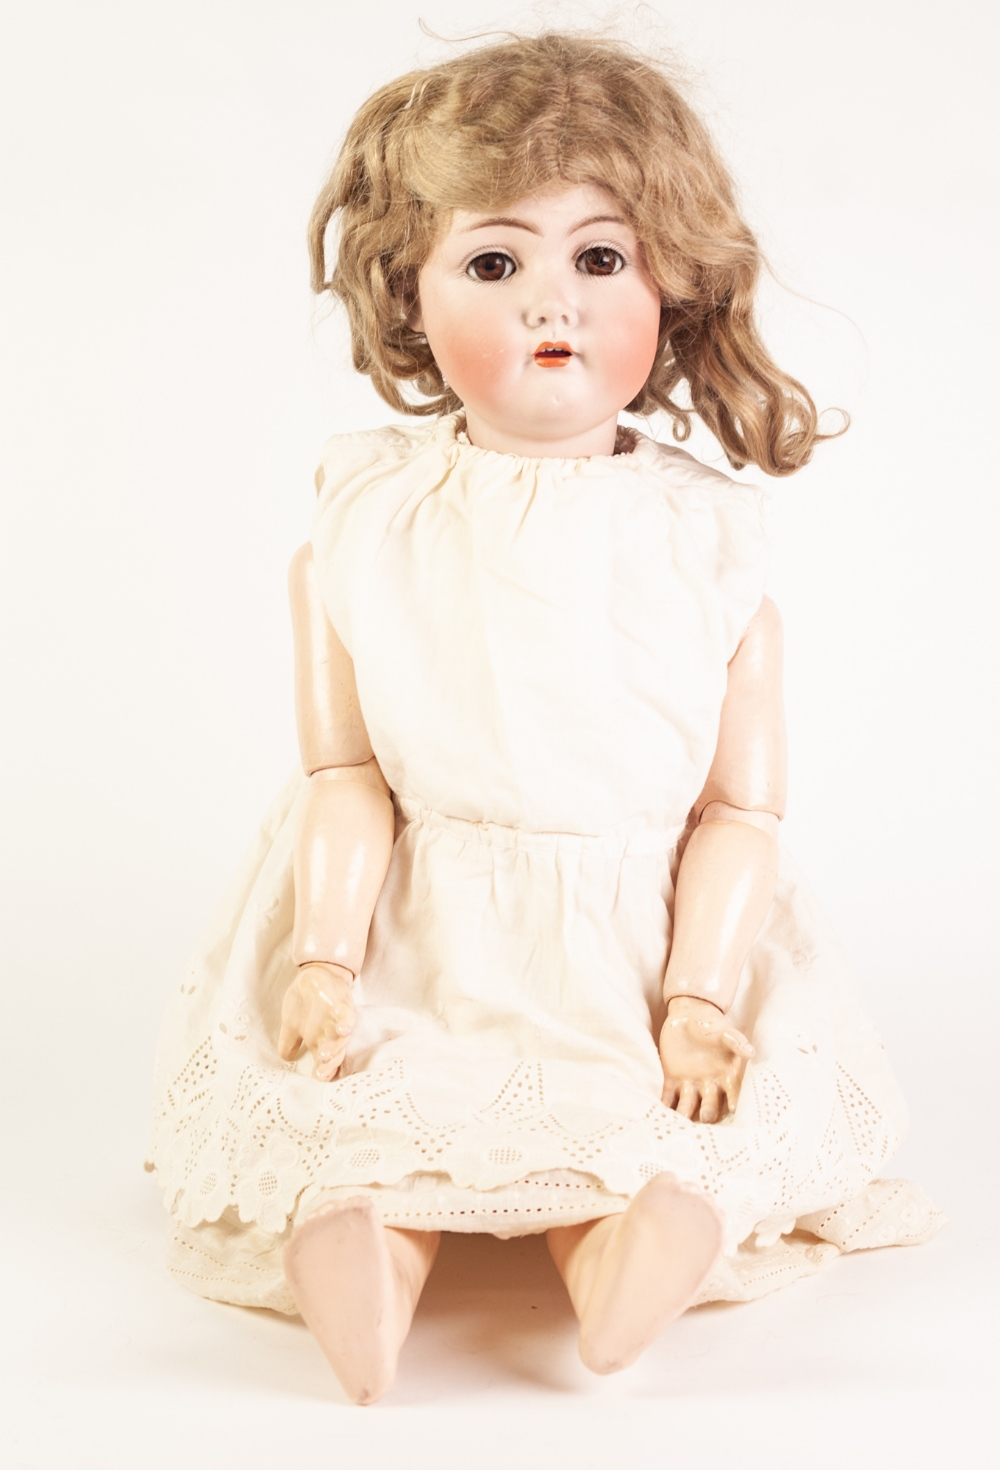 Lot 305 - SIMON & HABIG 420 WALKING GIRL CHARACTER DOLL, with bisque head, brown sleeping eyes, open mouth